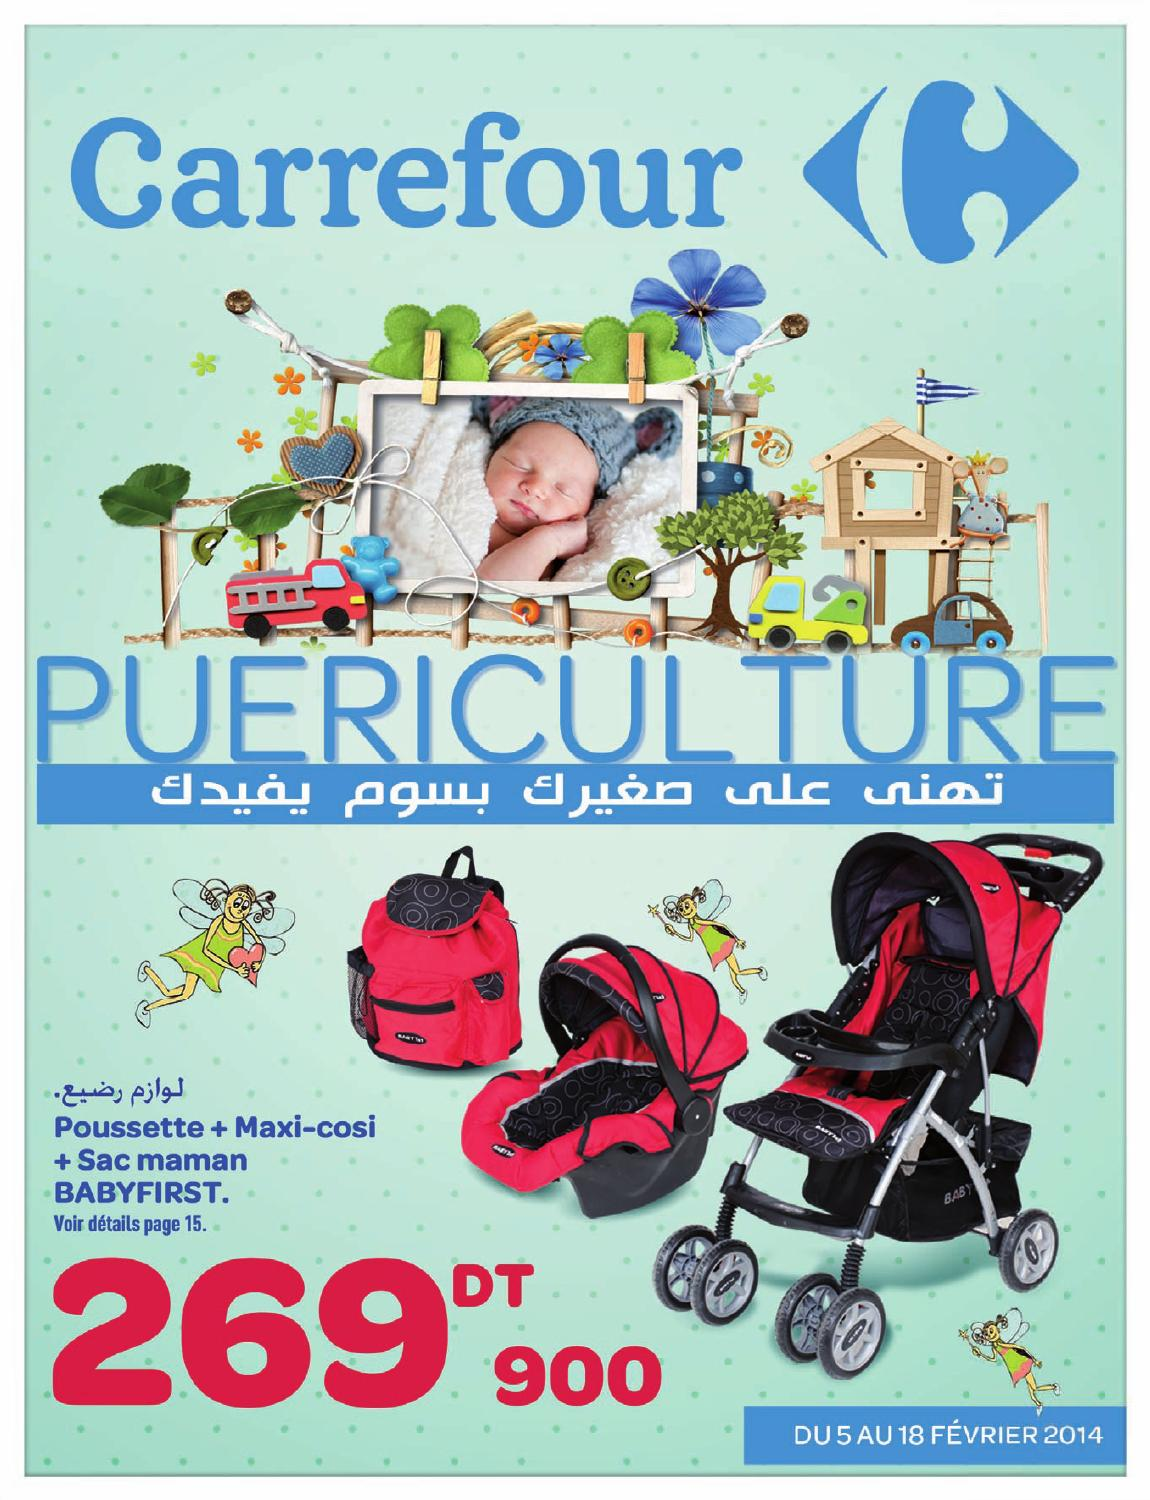 catalogue carrefour periculture by carrefour tunisie issuu. Black Bedroom Furniture Sets. Home Design Ideas